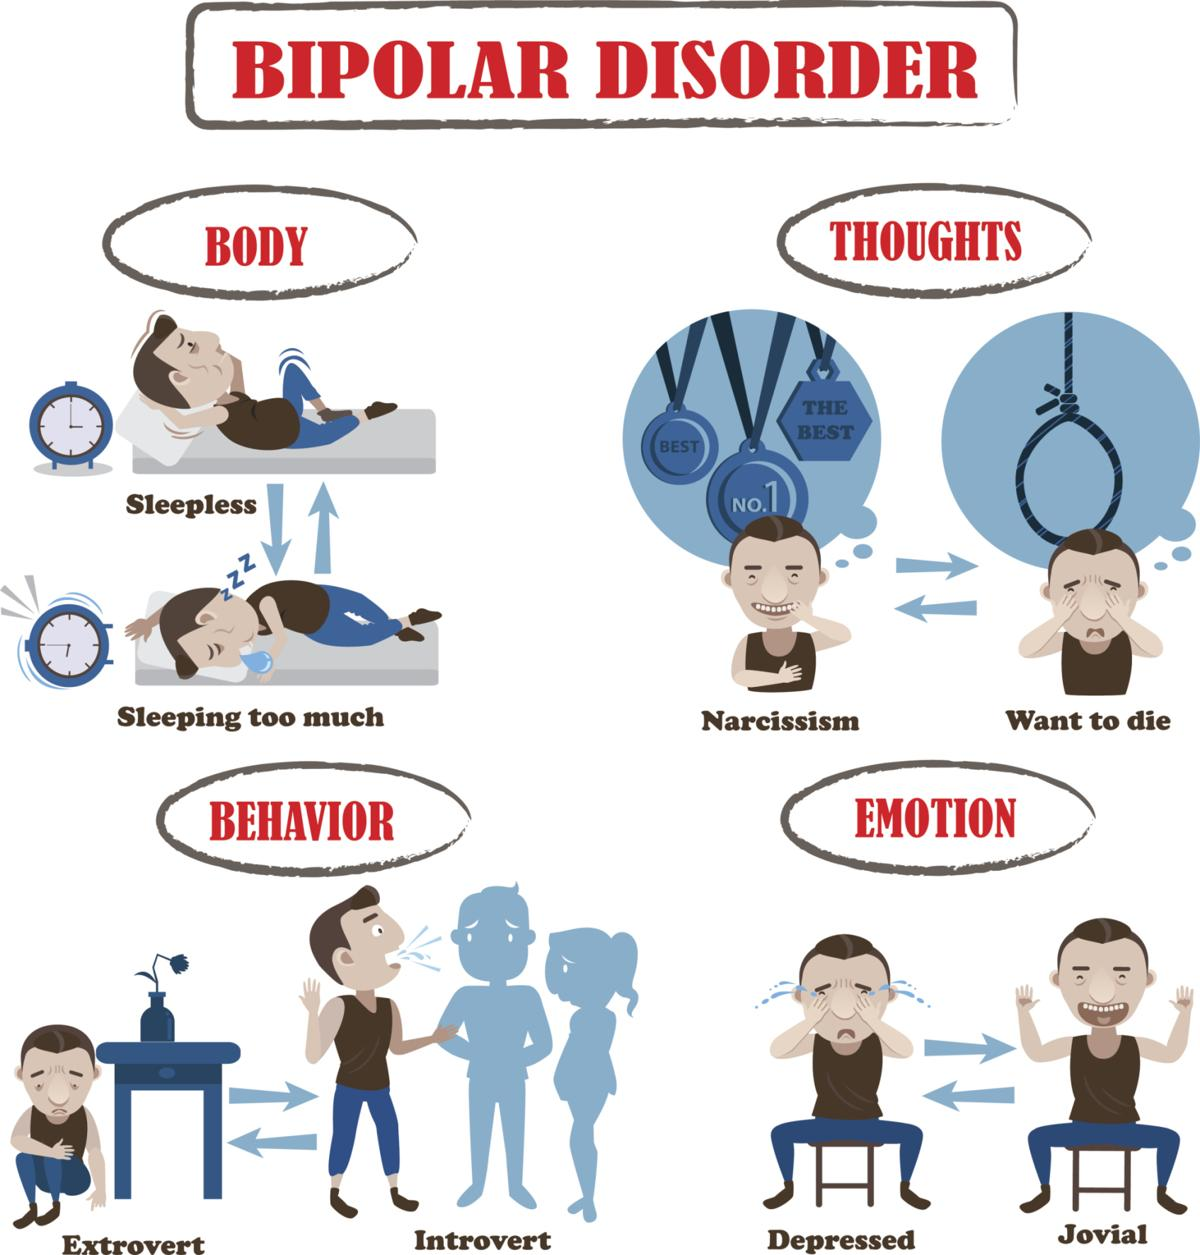 028 Bipolar Disorder Research Paper Controversial Psychology Excellent Topics Full